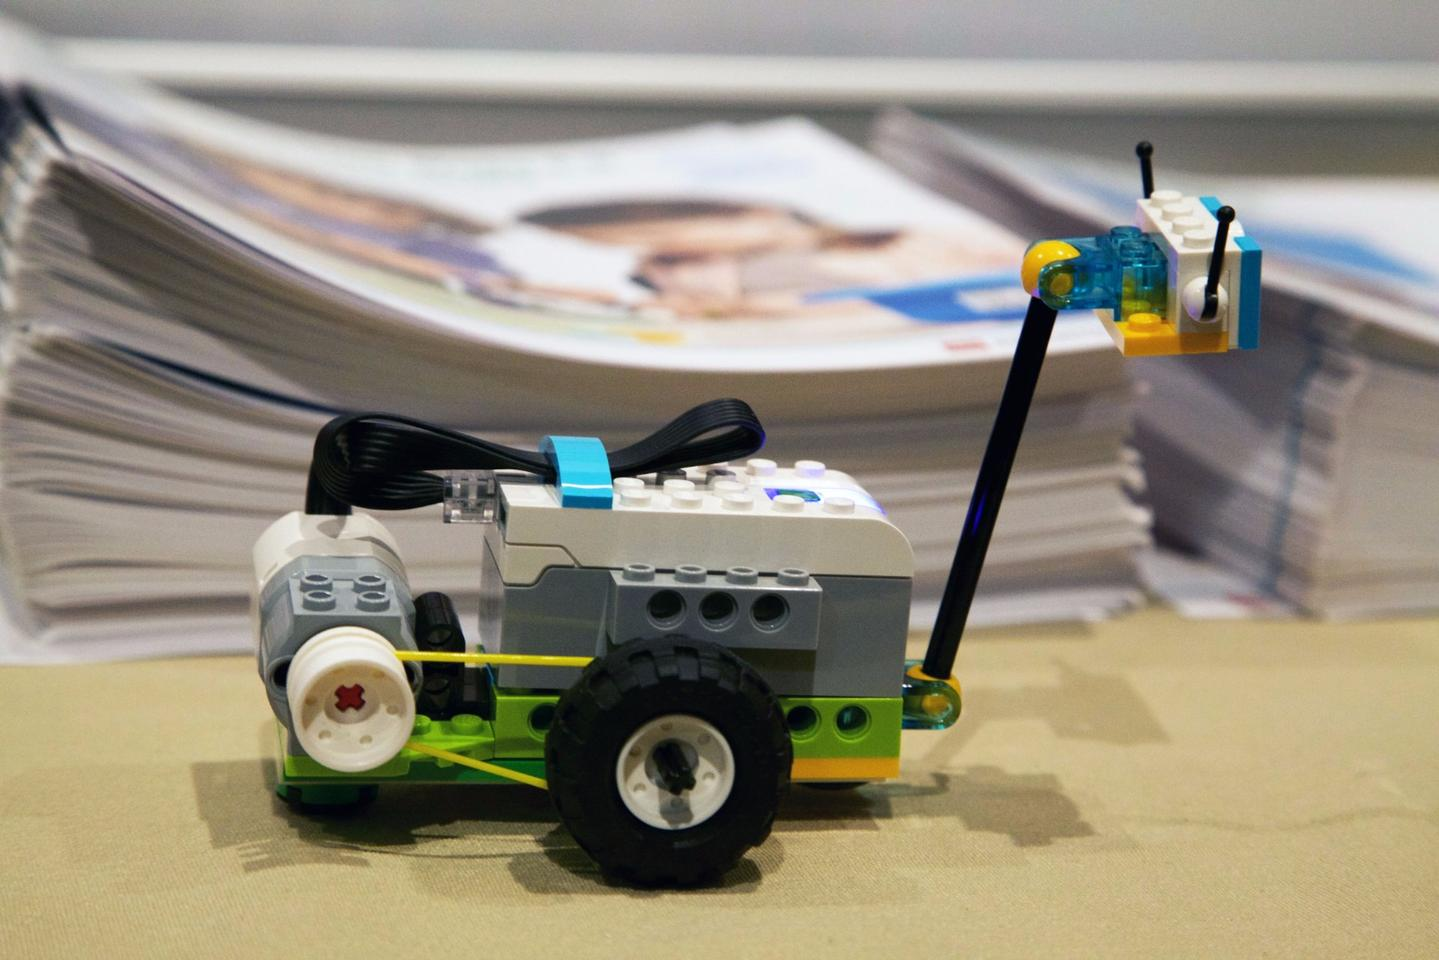 The Mini Milo tasks students with making their own space rover